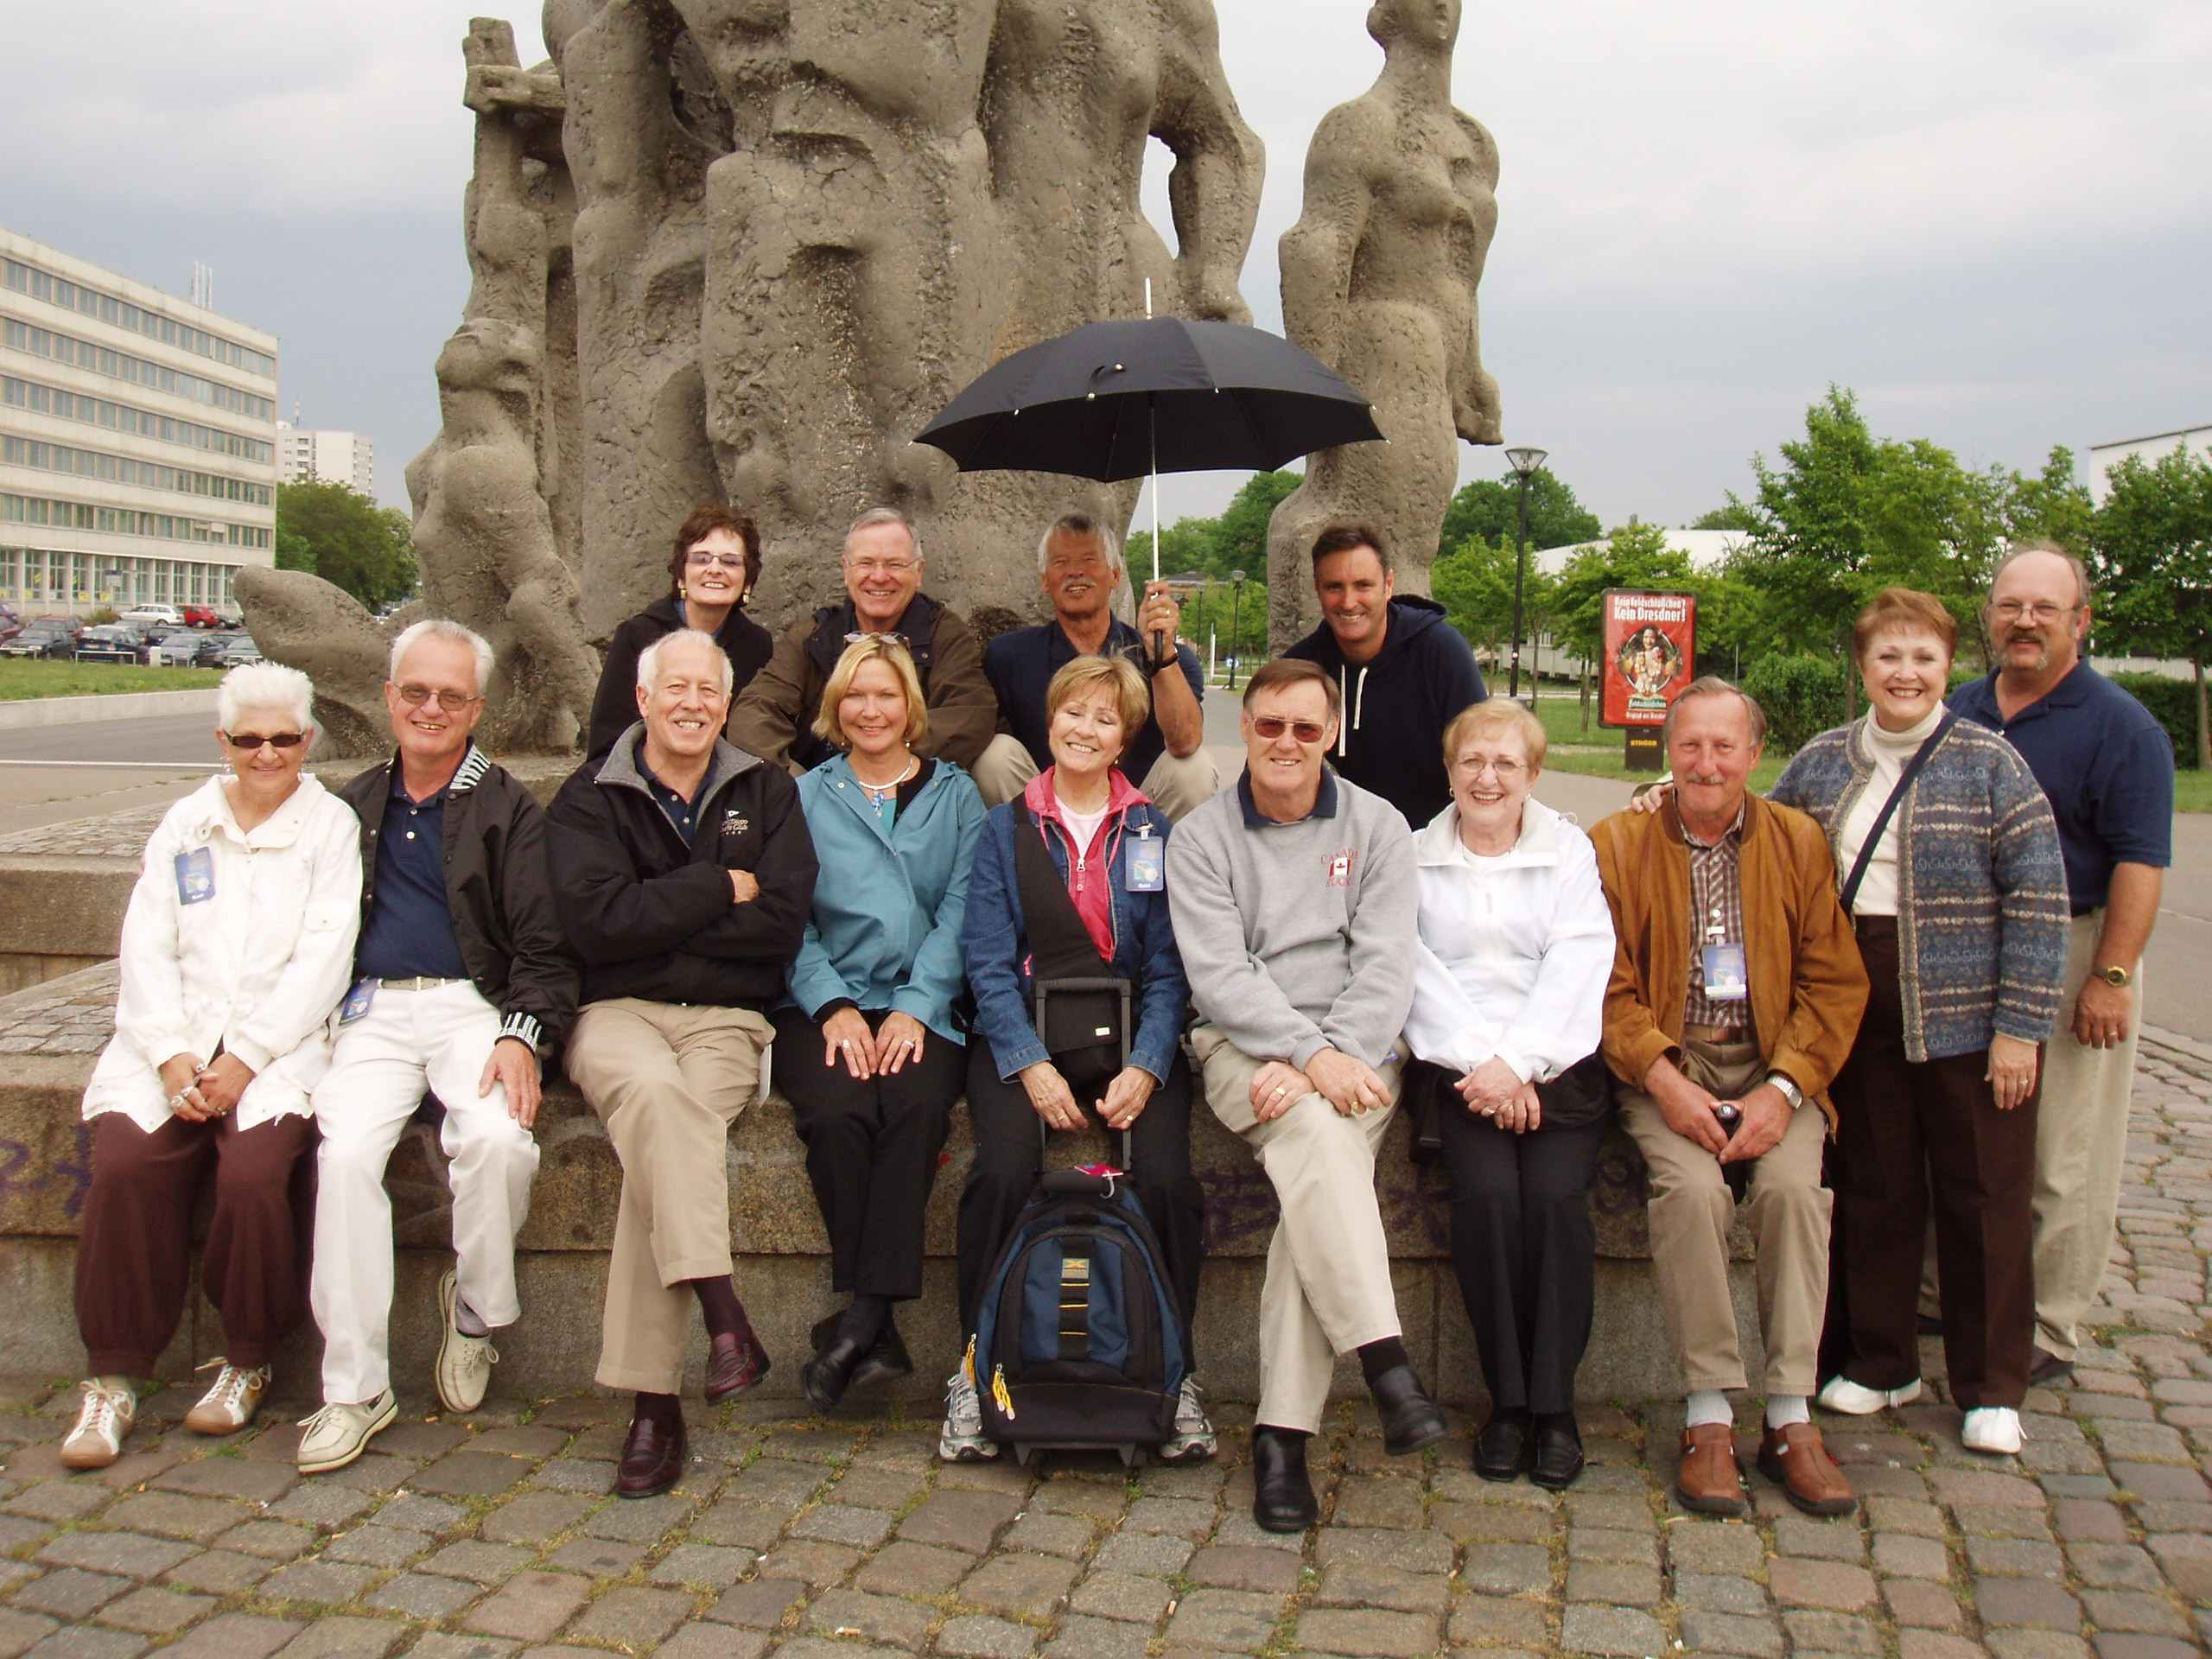 Canamger travel group 2007